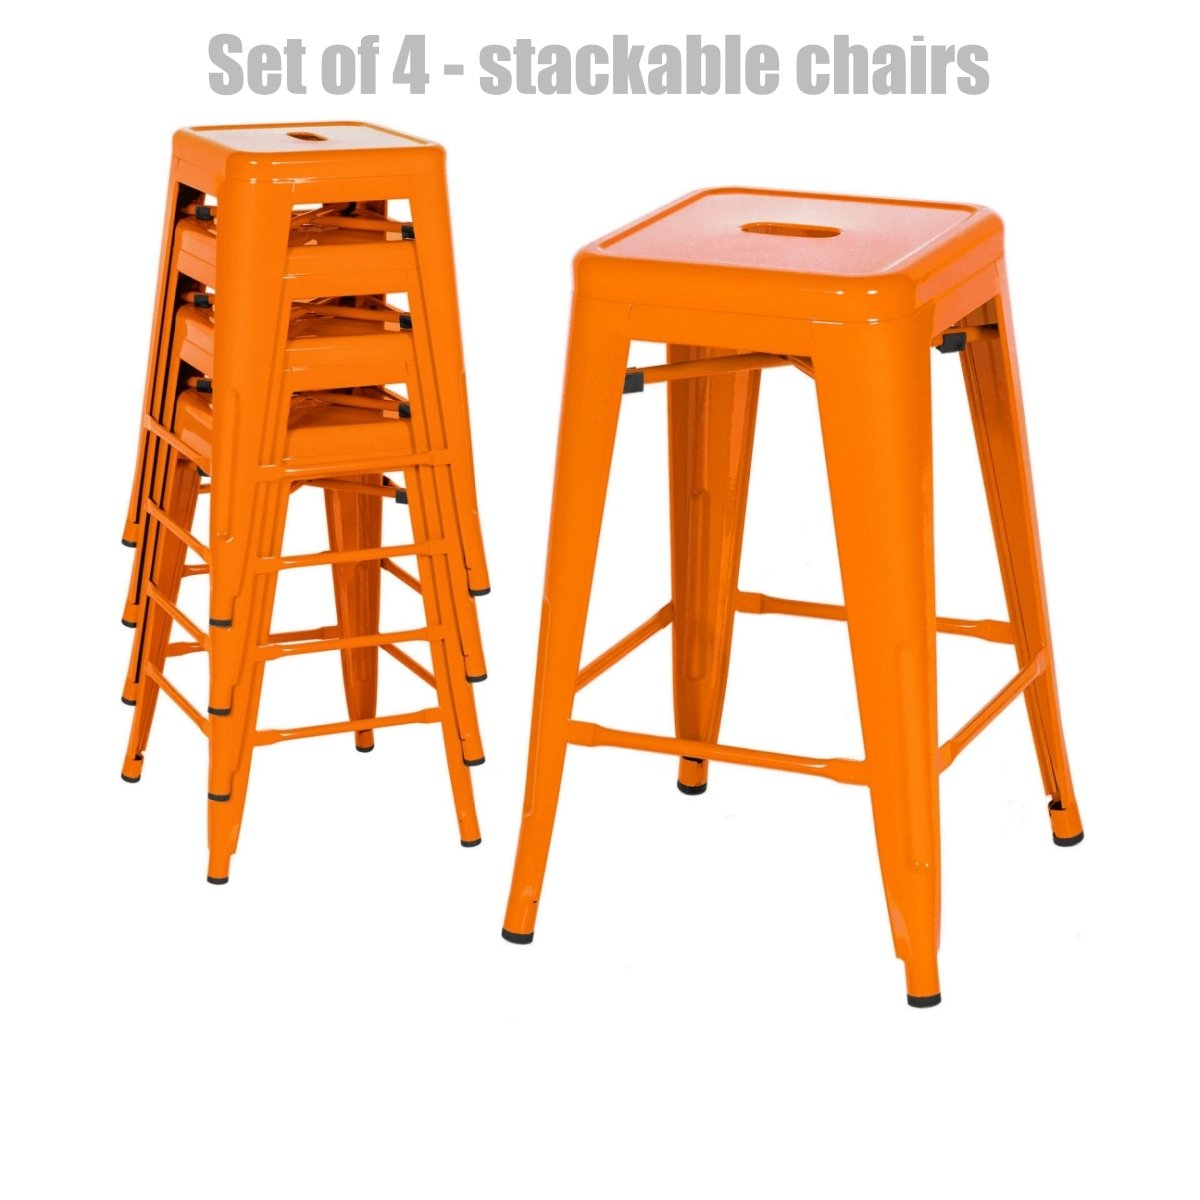 Antique Furniture Chairs ORANGE FRAME STACKING CHAIRS VINTAGE STACKABLE SCHOOL CHAIRS